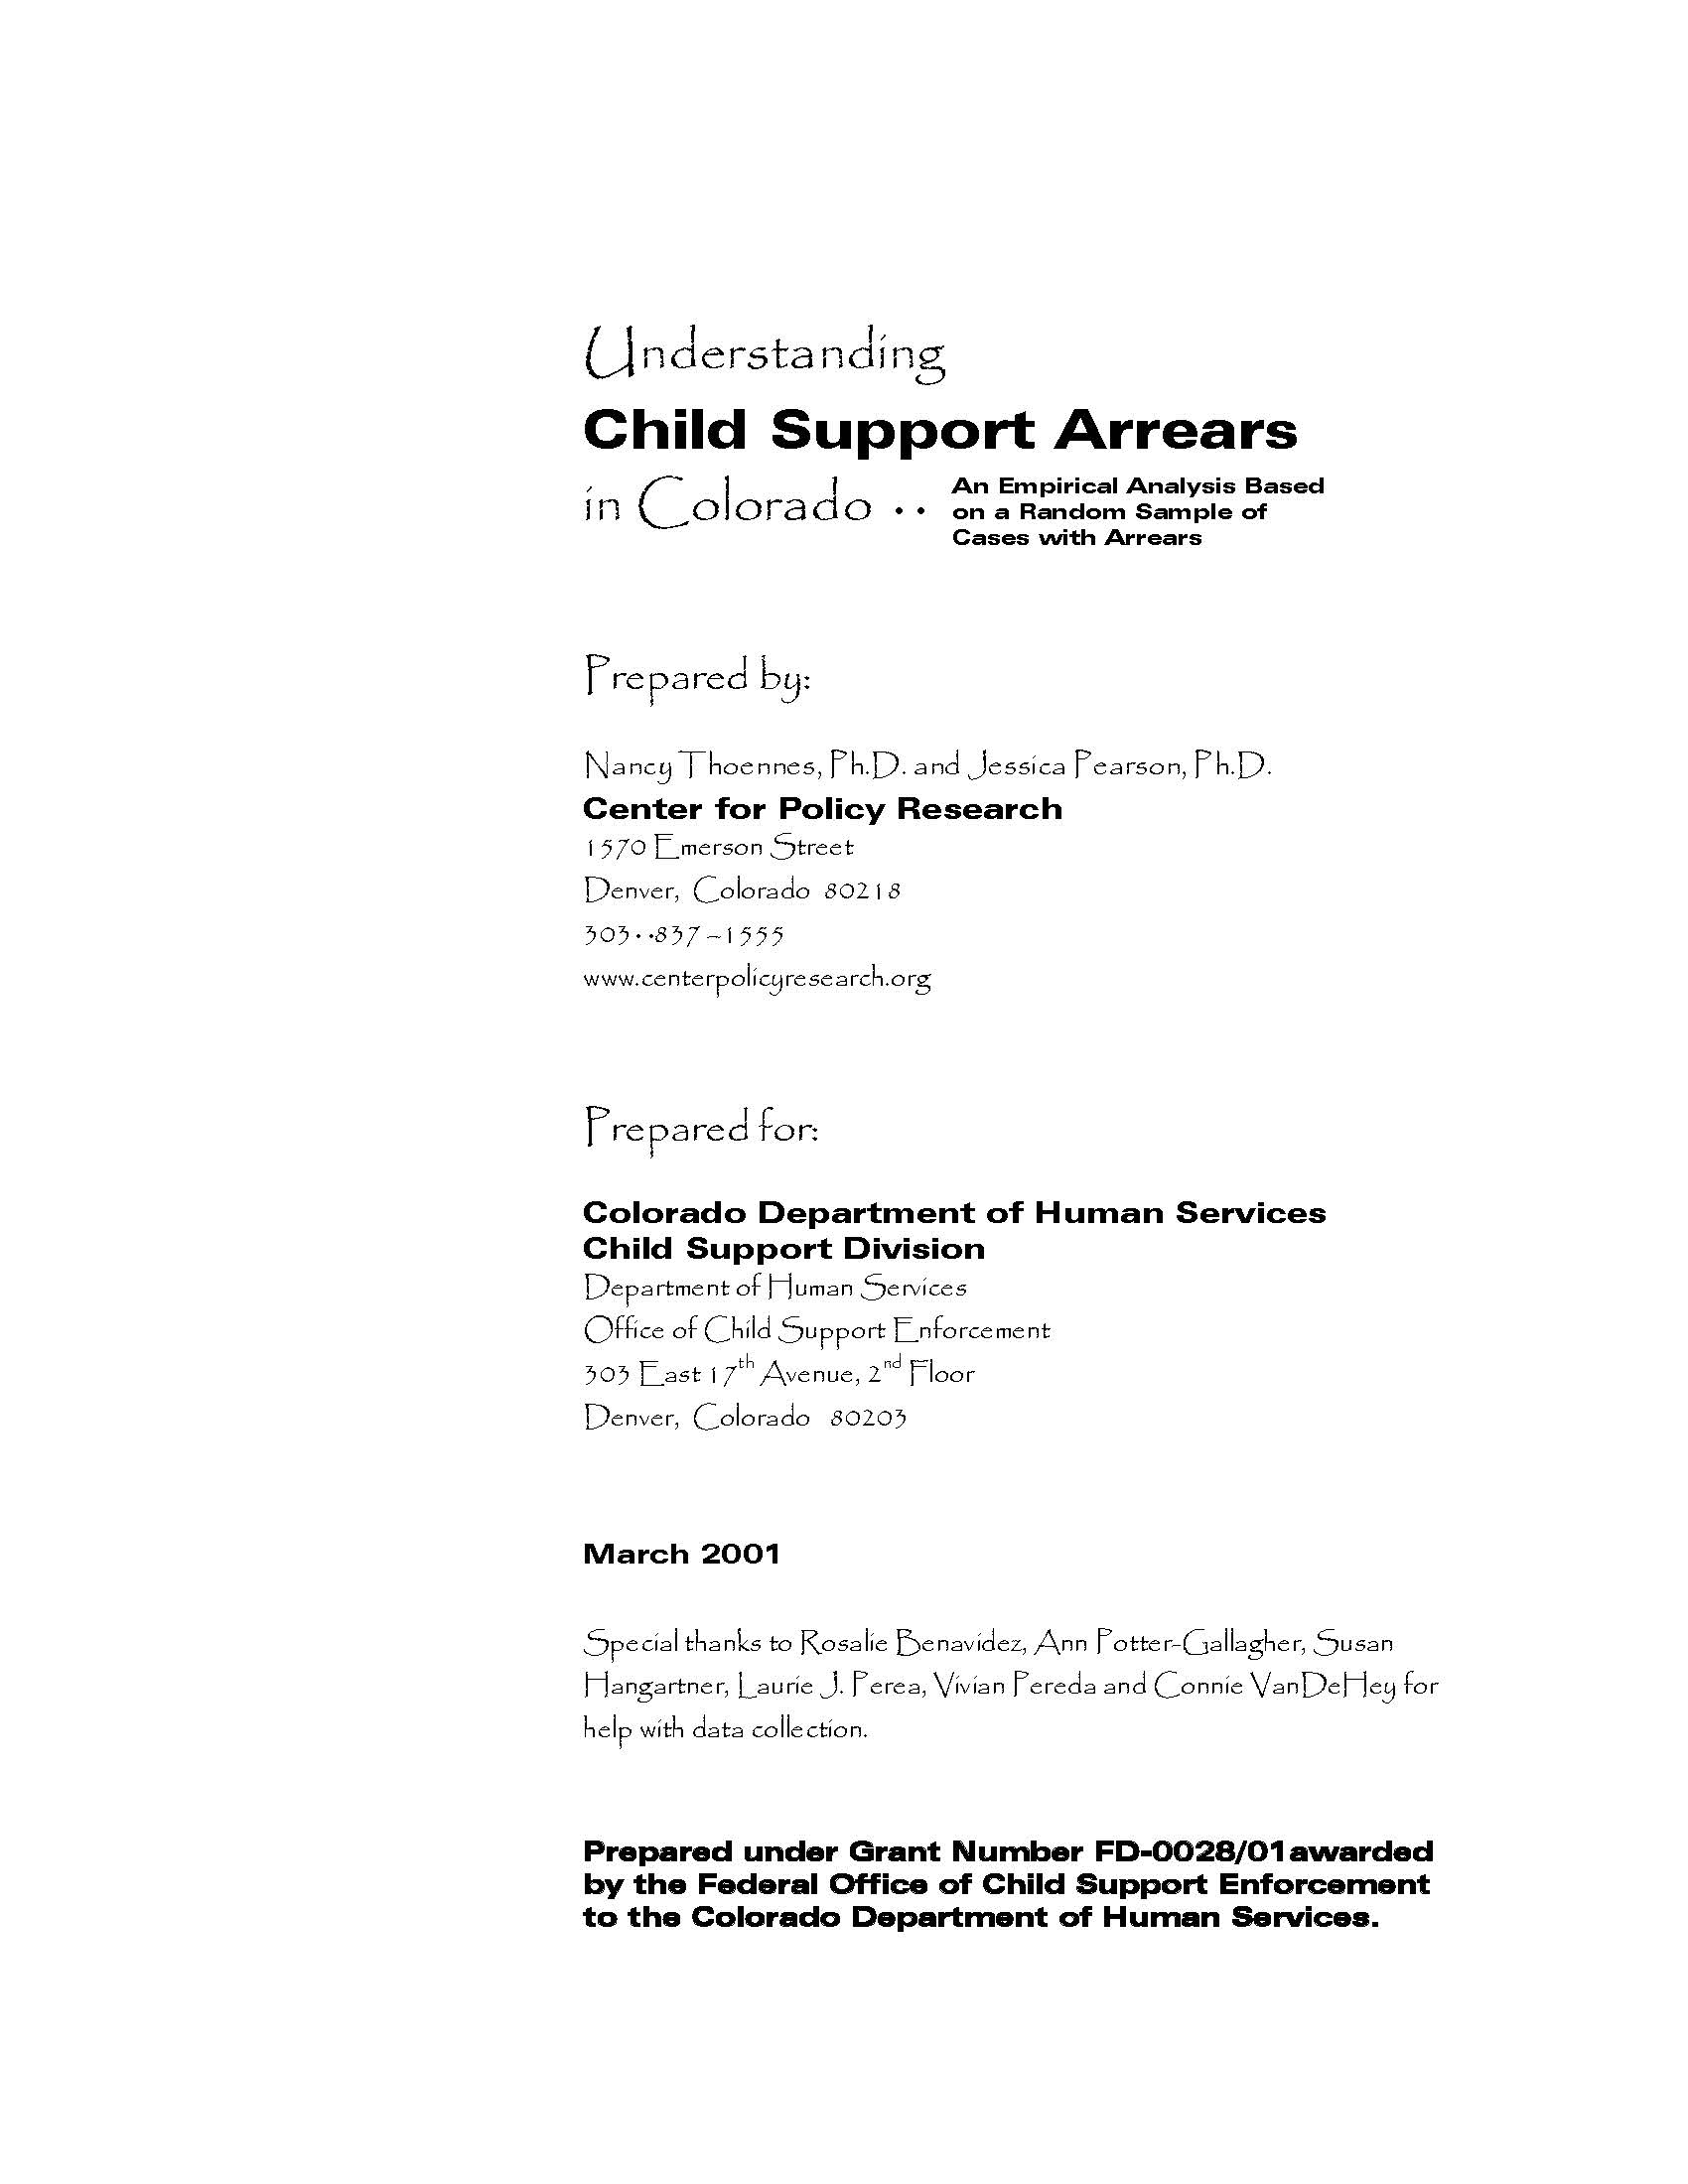 Child Support Arrears Forgiveness Letter from centerforpolicyresearch.org